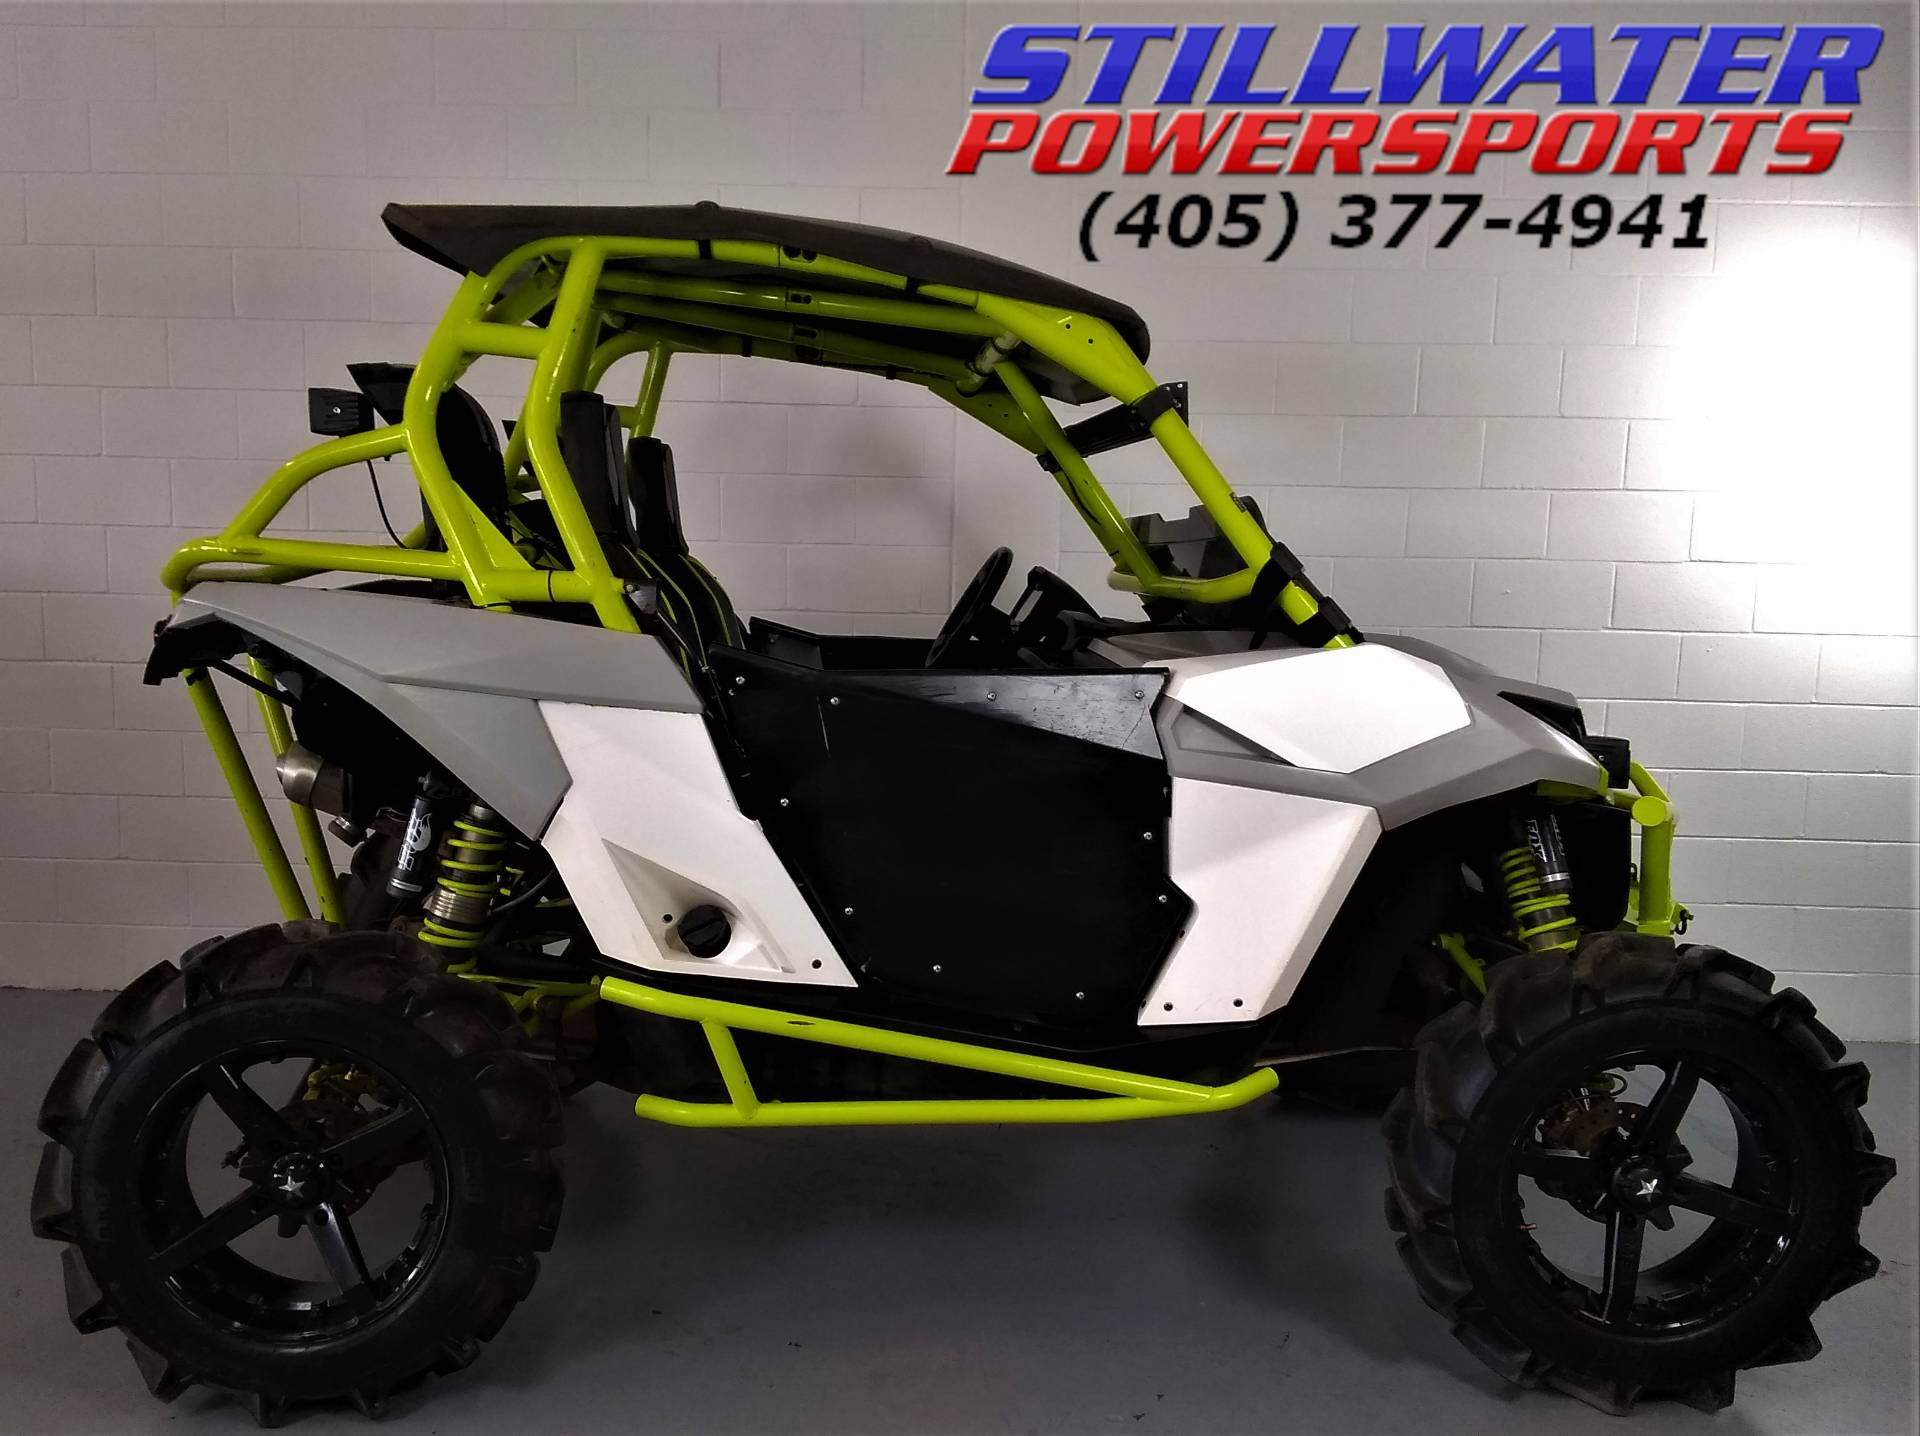 2015 Can-Am Maverick™ X® ds 1000R Turbo in Stillwater, Oklahoma - Photo 1